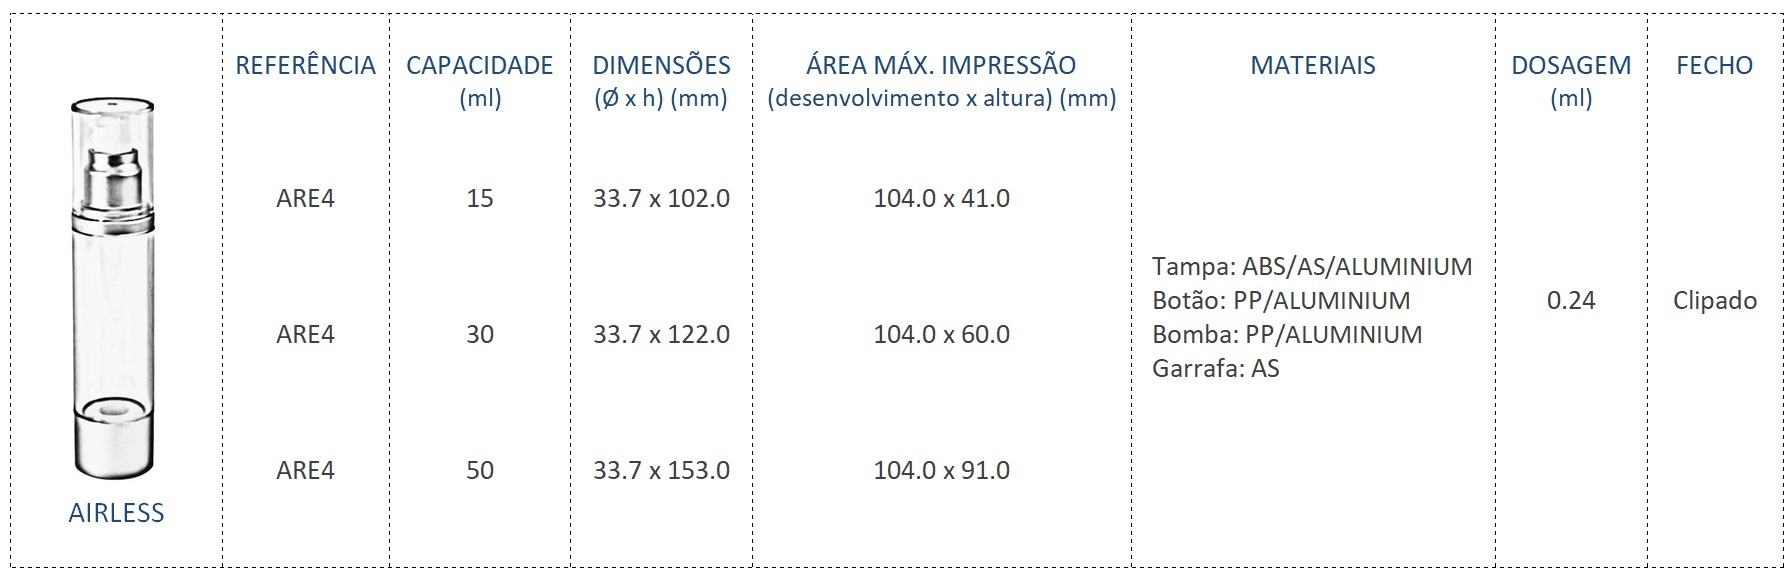 Embalagem Airless ARE4